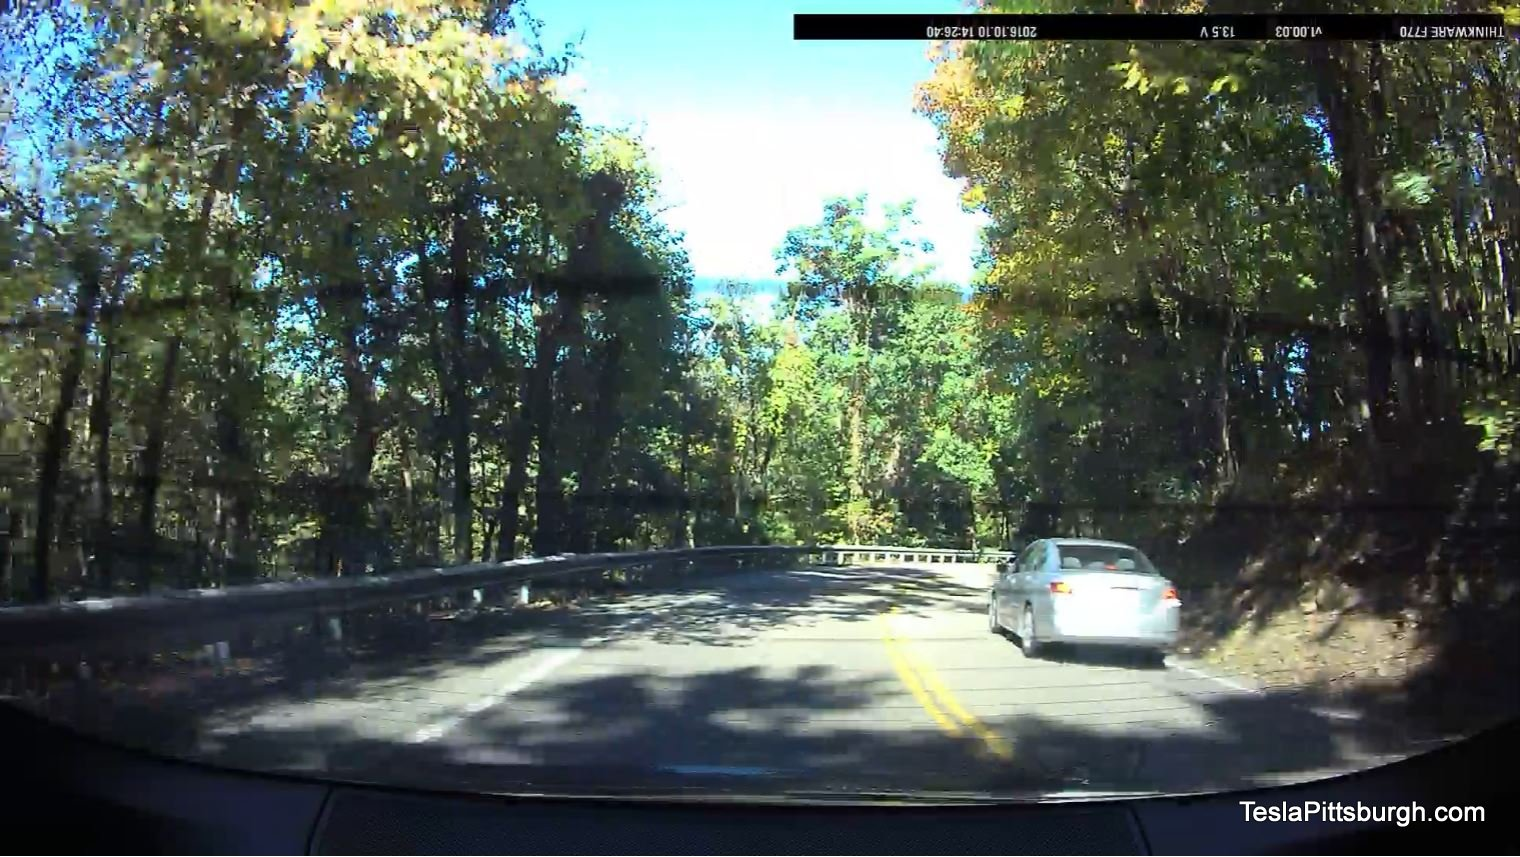 tesla-pittsburgh-dashcam-review-thinkware-f770-camera-daylight-cemetery-lane-rear